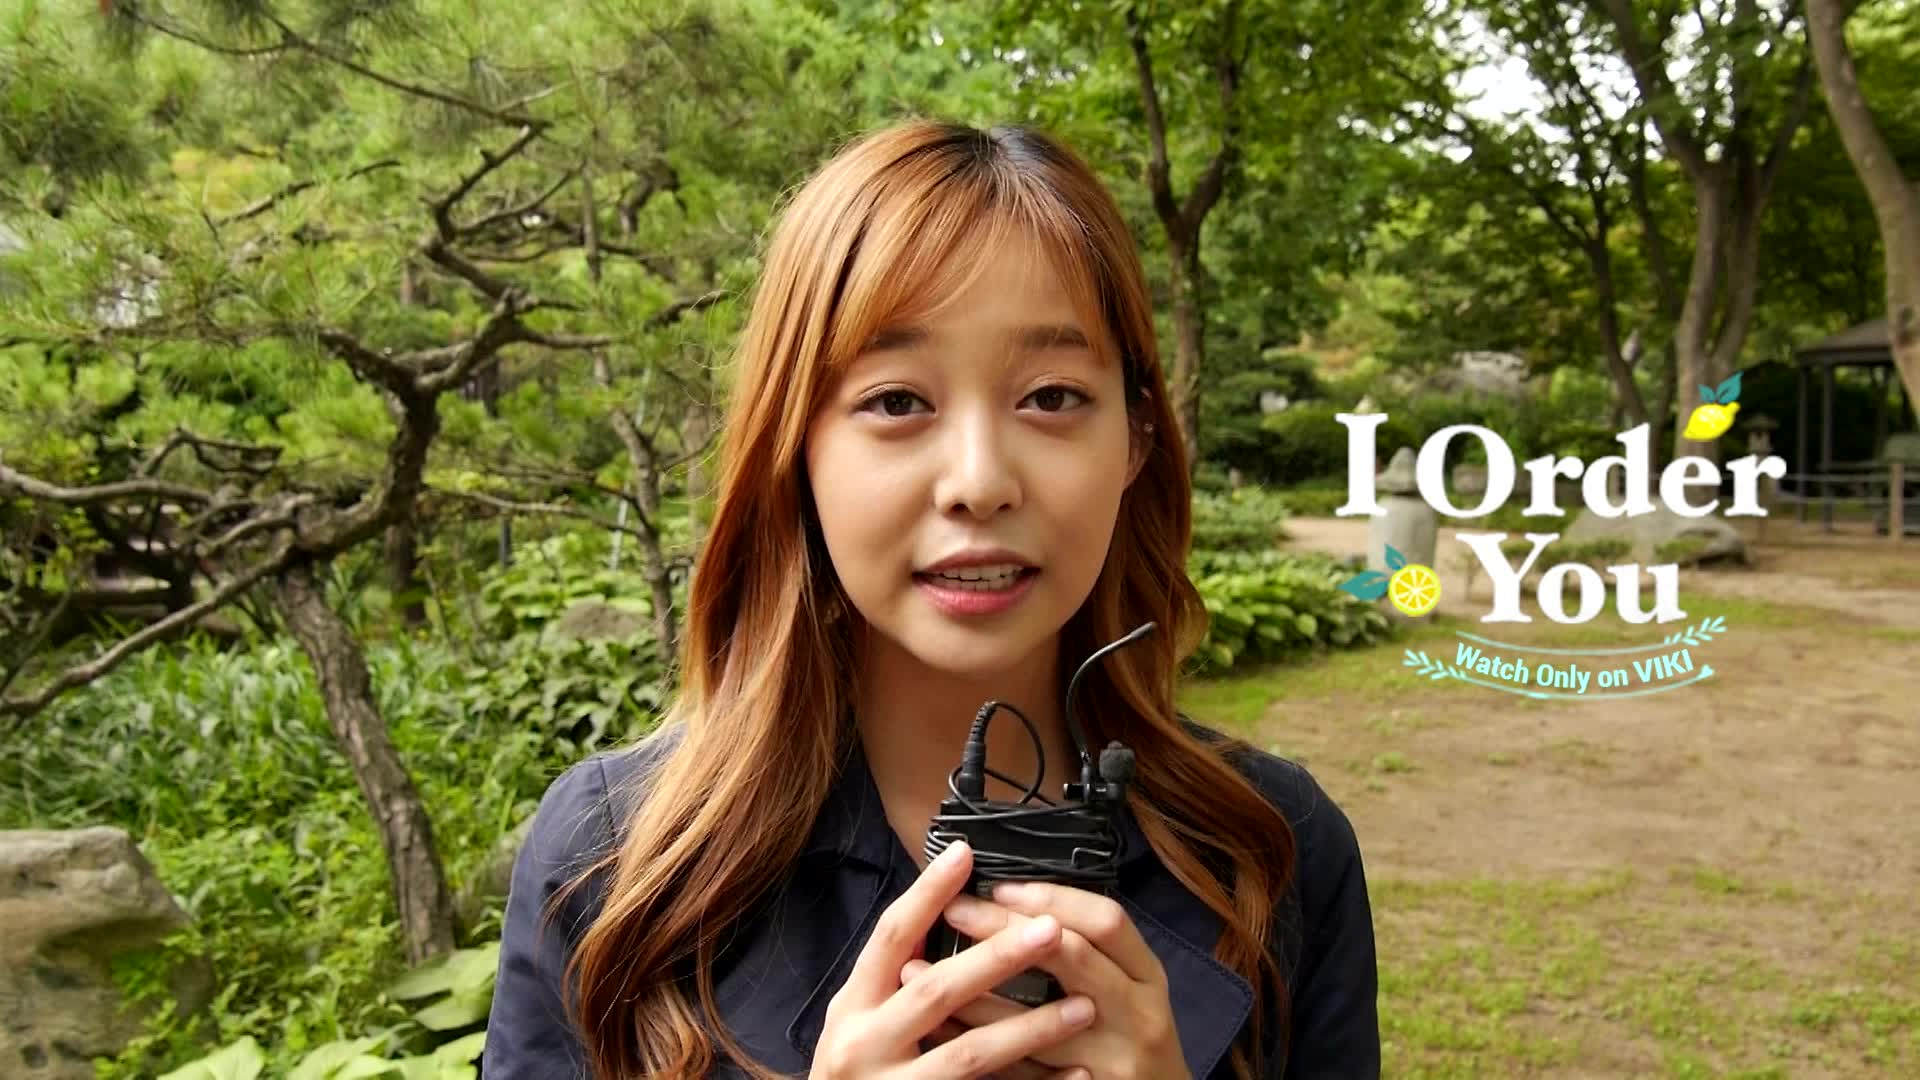 Kim Ga Eun's Shoutout to Viki Fans 1: I Order You